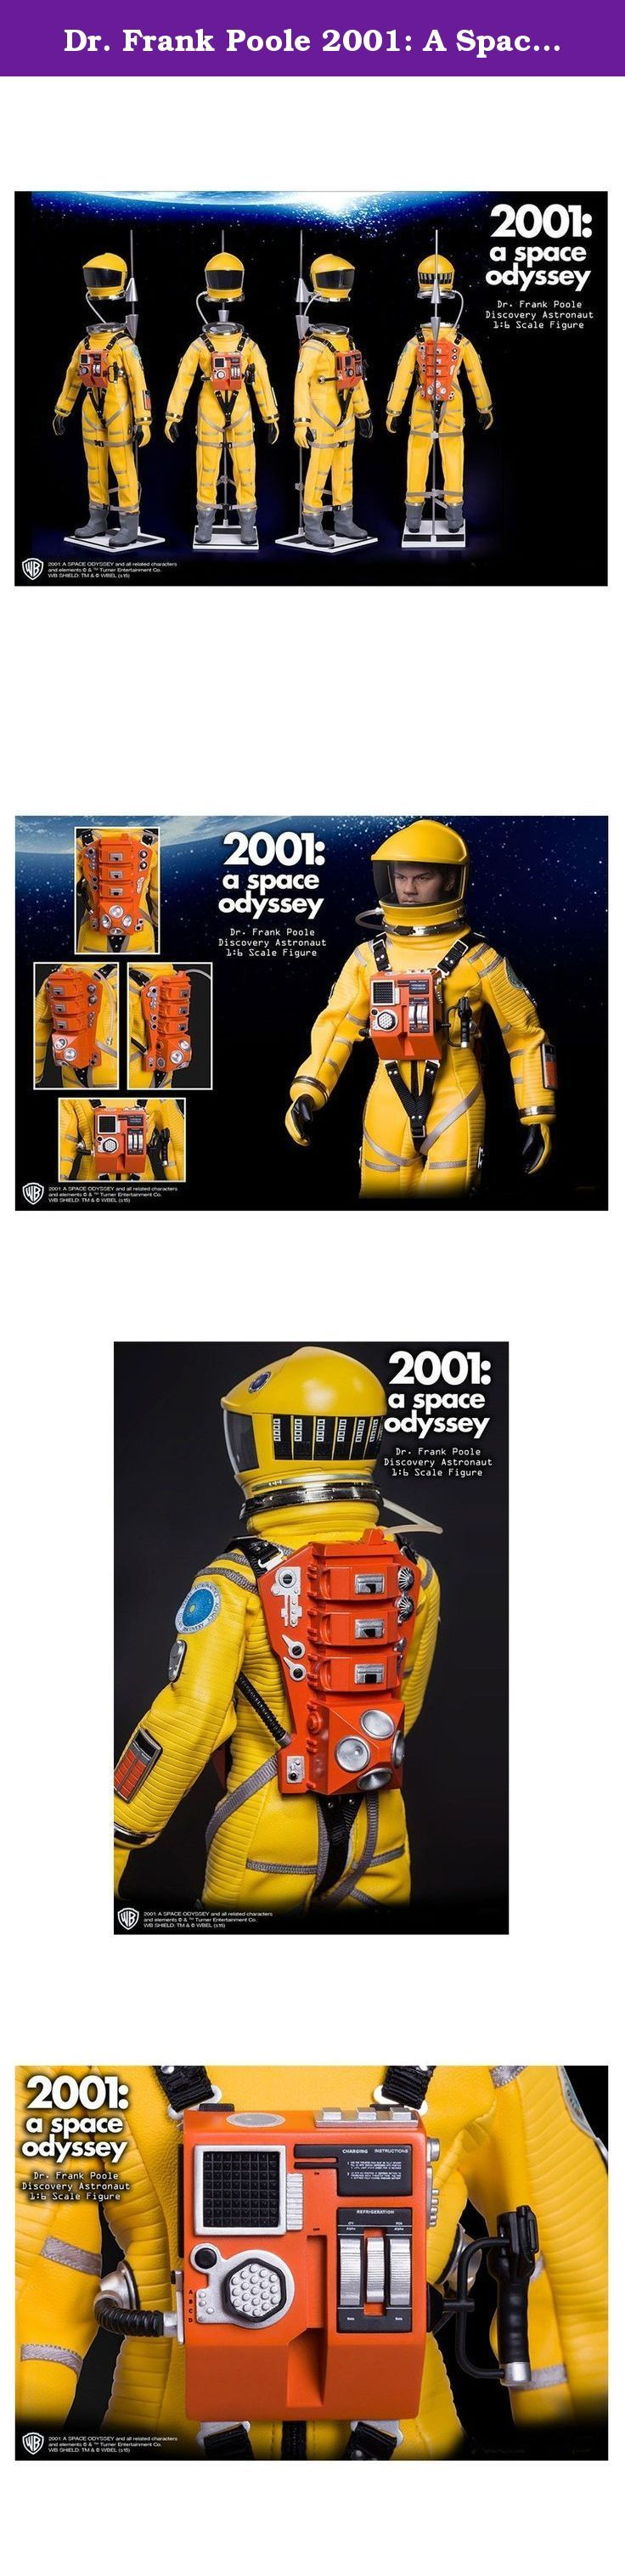 Dr. Frank Poole 2001: A Space Odyssey Discovery Astronaut Collectible Figure. Academy Award winning 2001: A Space Odyssey was the highest grossing North American flm in 1968 due in large part to its pioneering special effects, imagery, and relevant themes. The film follows Dr. Dave Bowman (played by Keir Dullea) Dr. Frank Poole (played by Gary Lockwood) and other astronauts on a trip to Jupiter. Arguably one of the greatest and most influential films ever made, 2001: A Space Odyssey set…